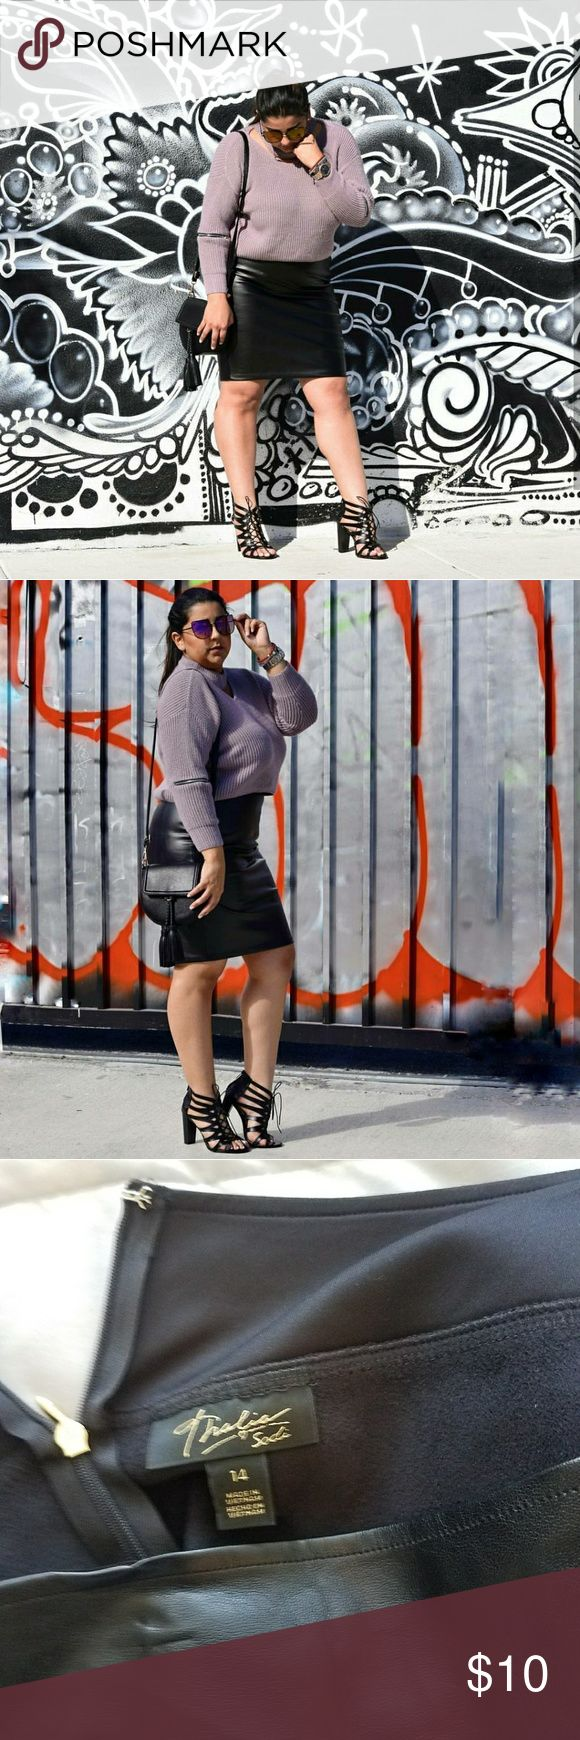 Black leather skirt! Gently used gorgeous leather skirt for your favorite night out! Thalia Sodi Skirts Midi